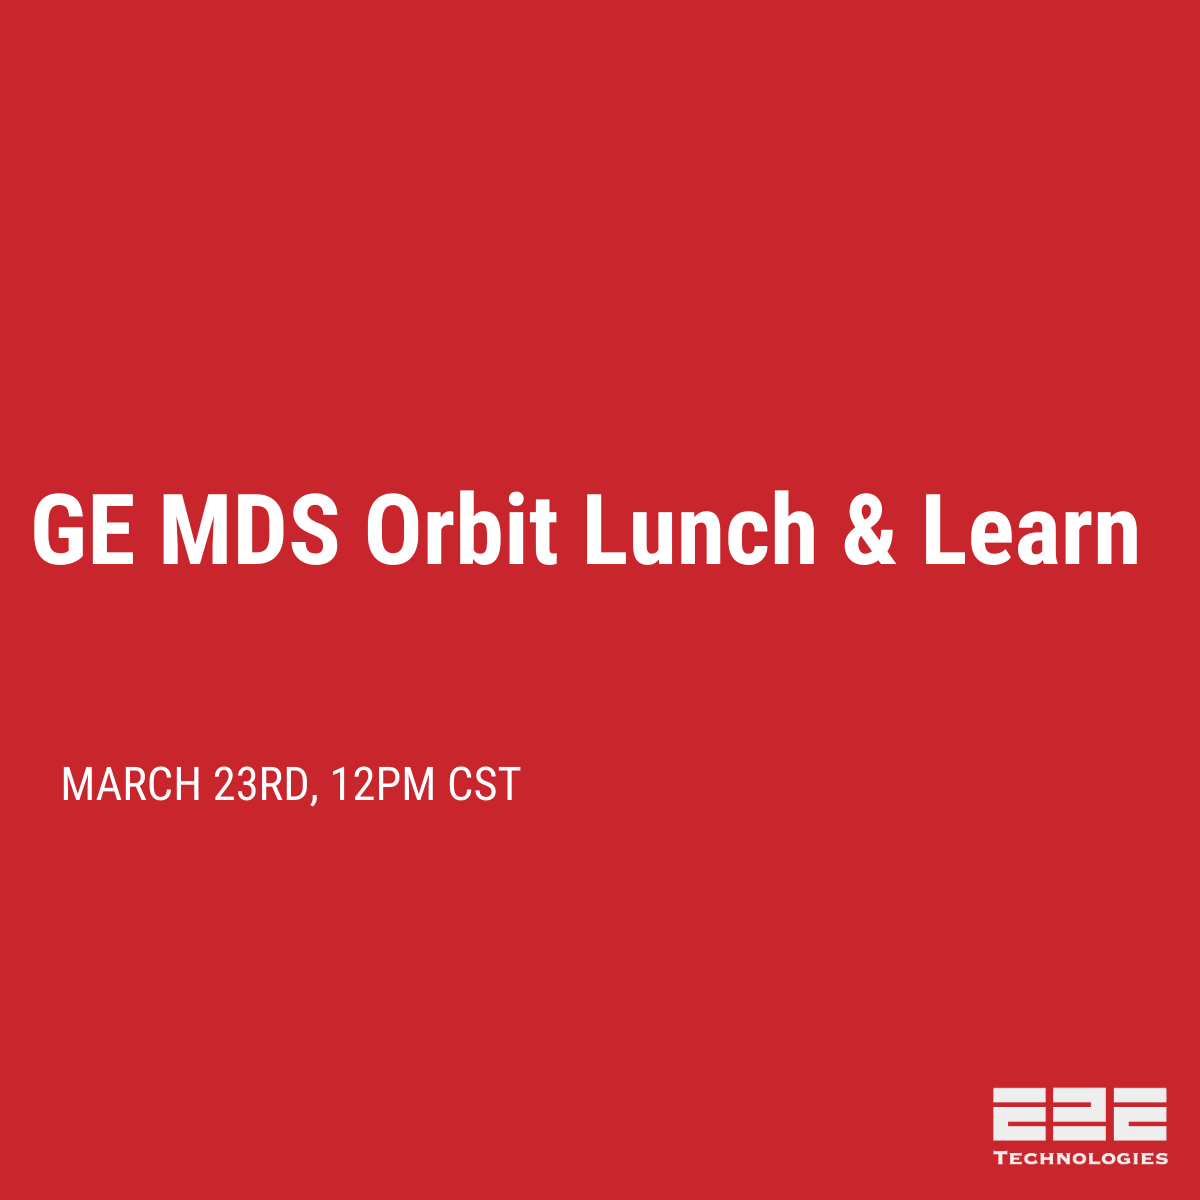 GE MDS Orbit Platform Lunch & Learn